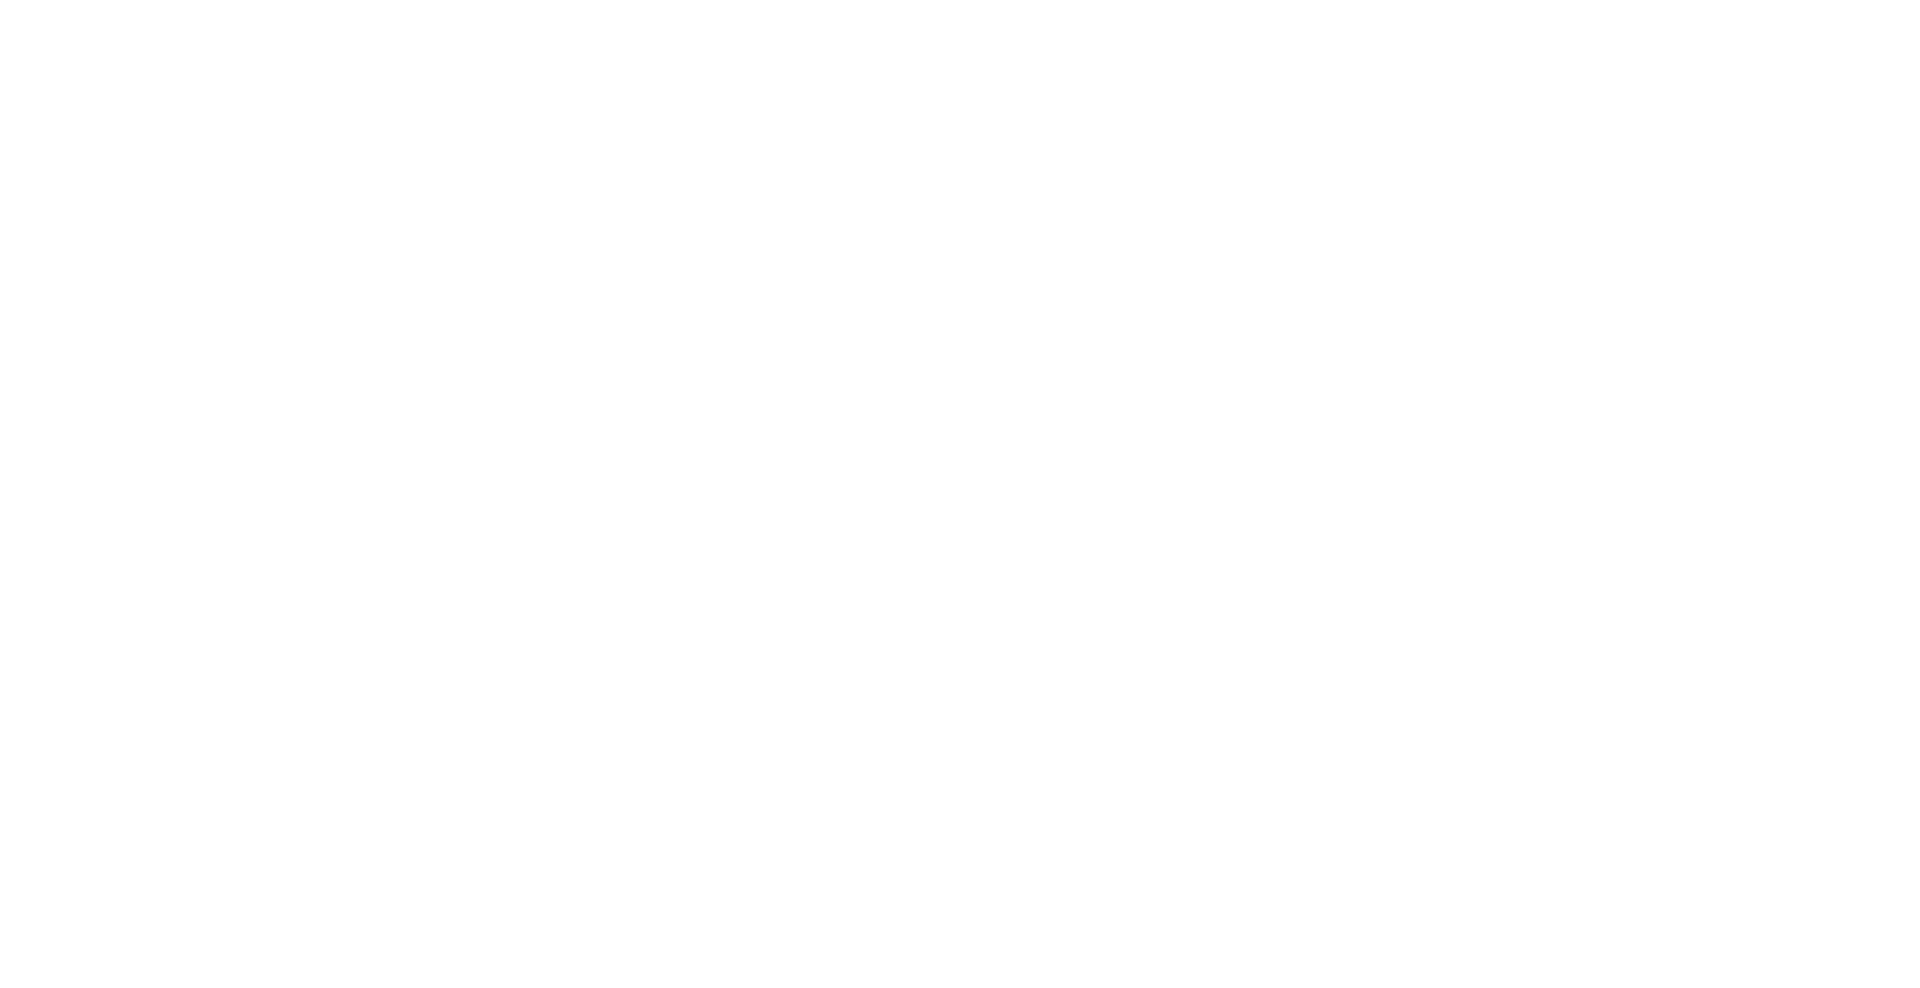 13. Sunrise senior living Logo